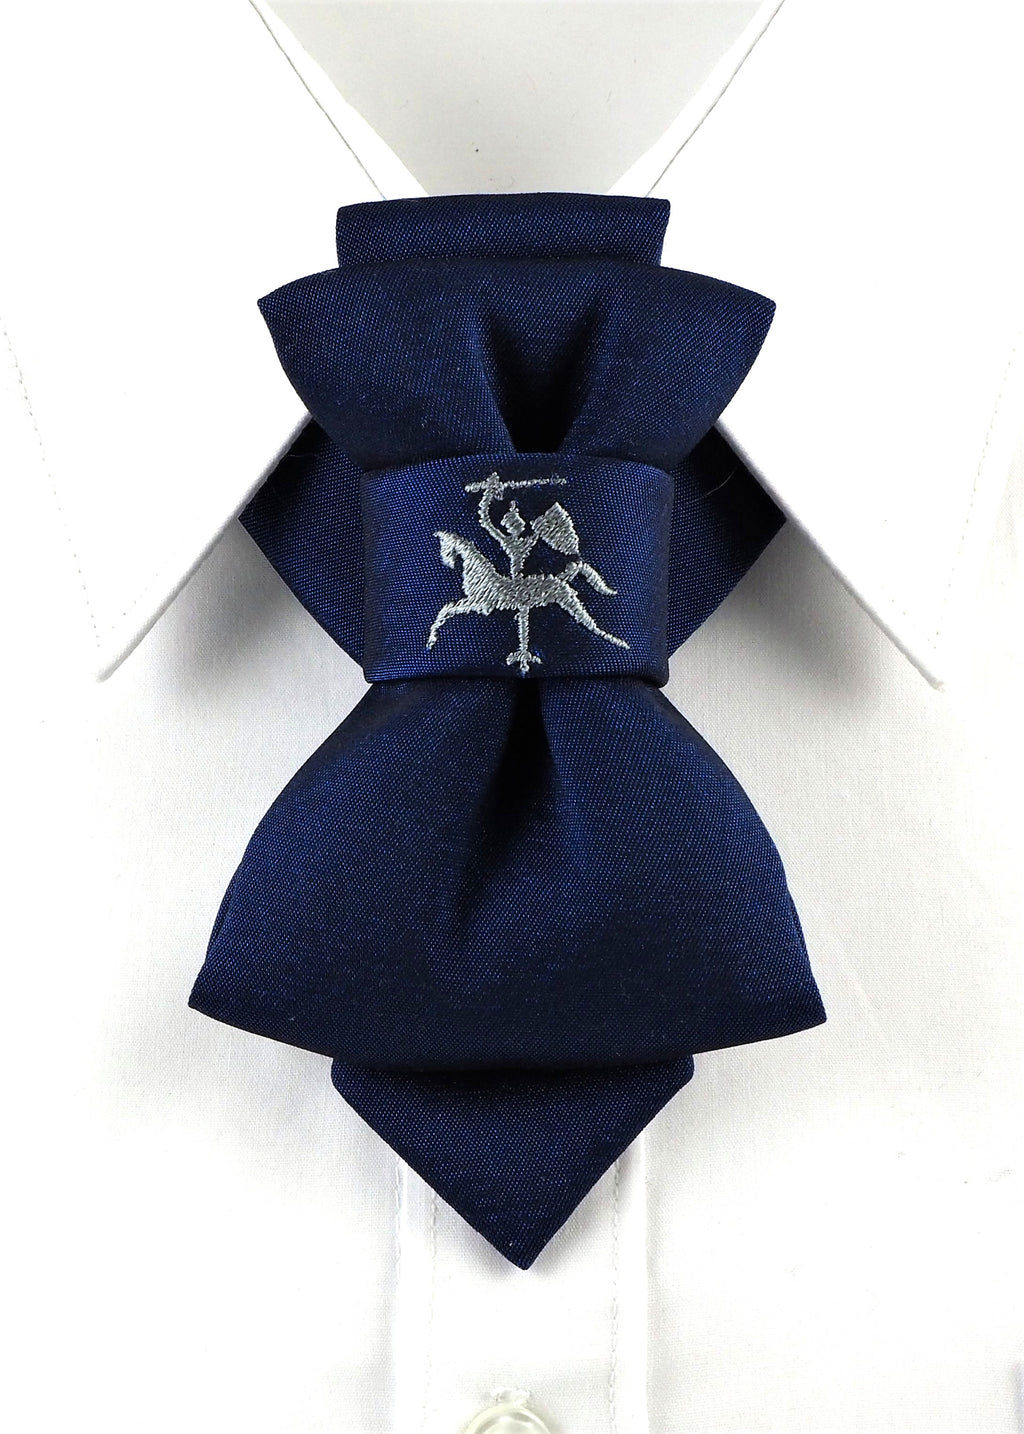 VYTIS MIDNIGHT - Ruty design Hopper bow tie, Ruty Design, Necktie for men, Vertical bow tie, Original and unique bow tie